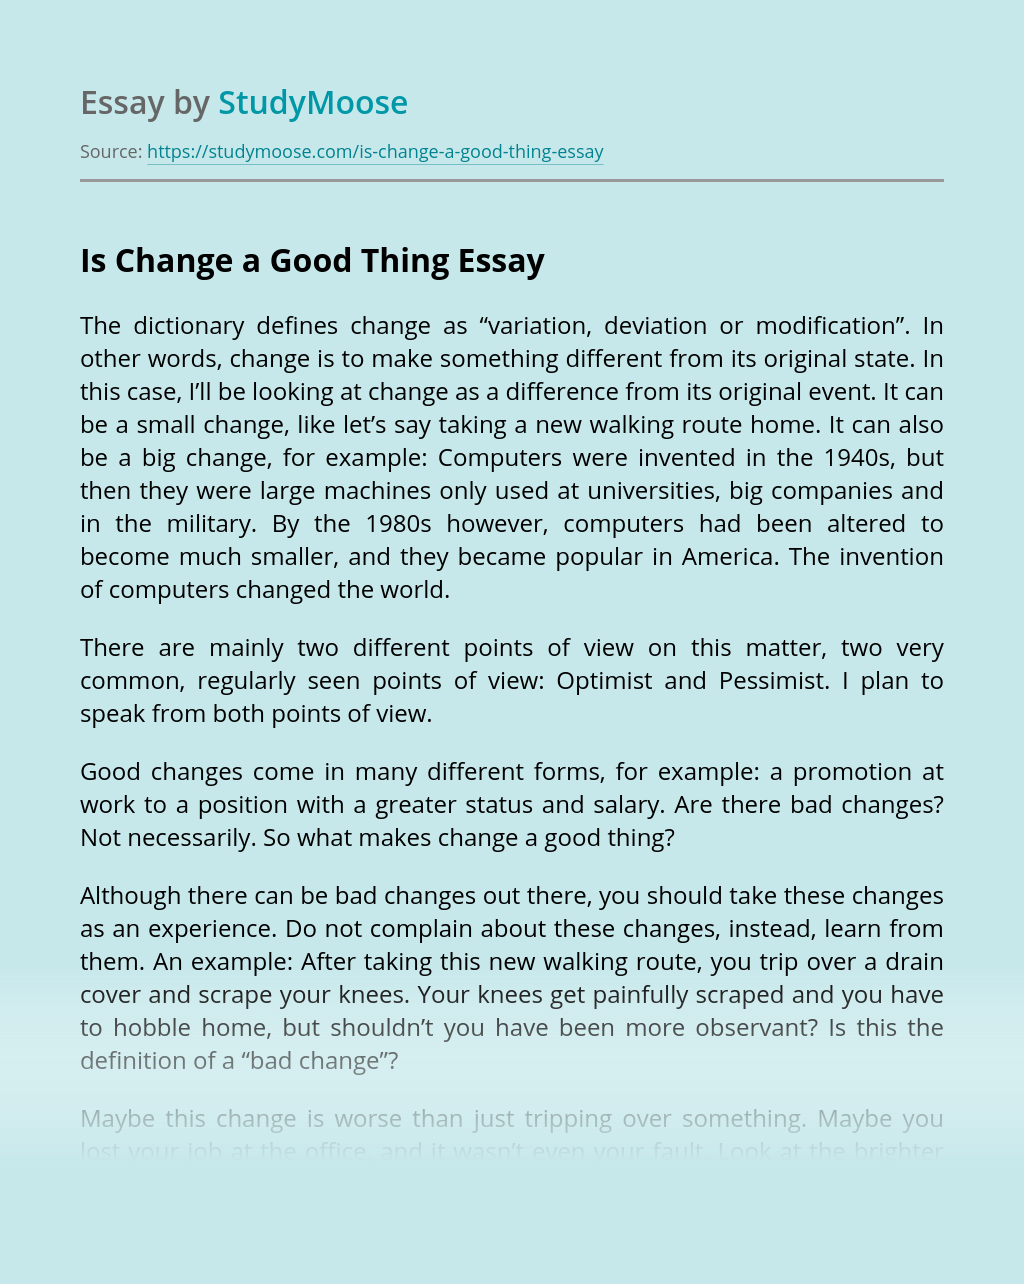 Is Change a Good Thing